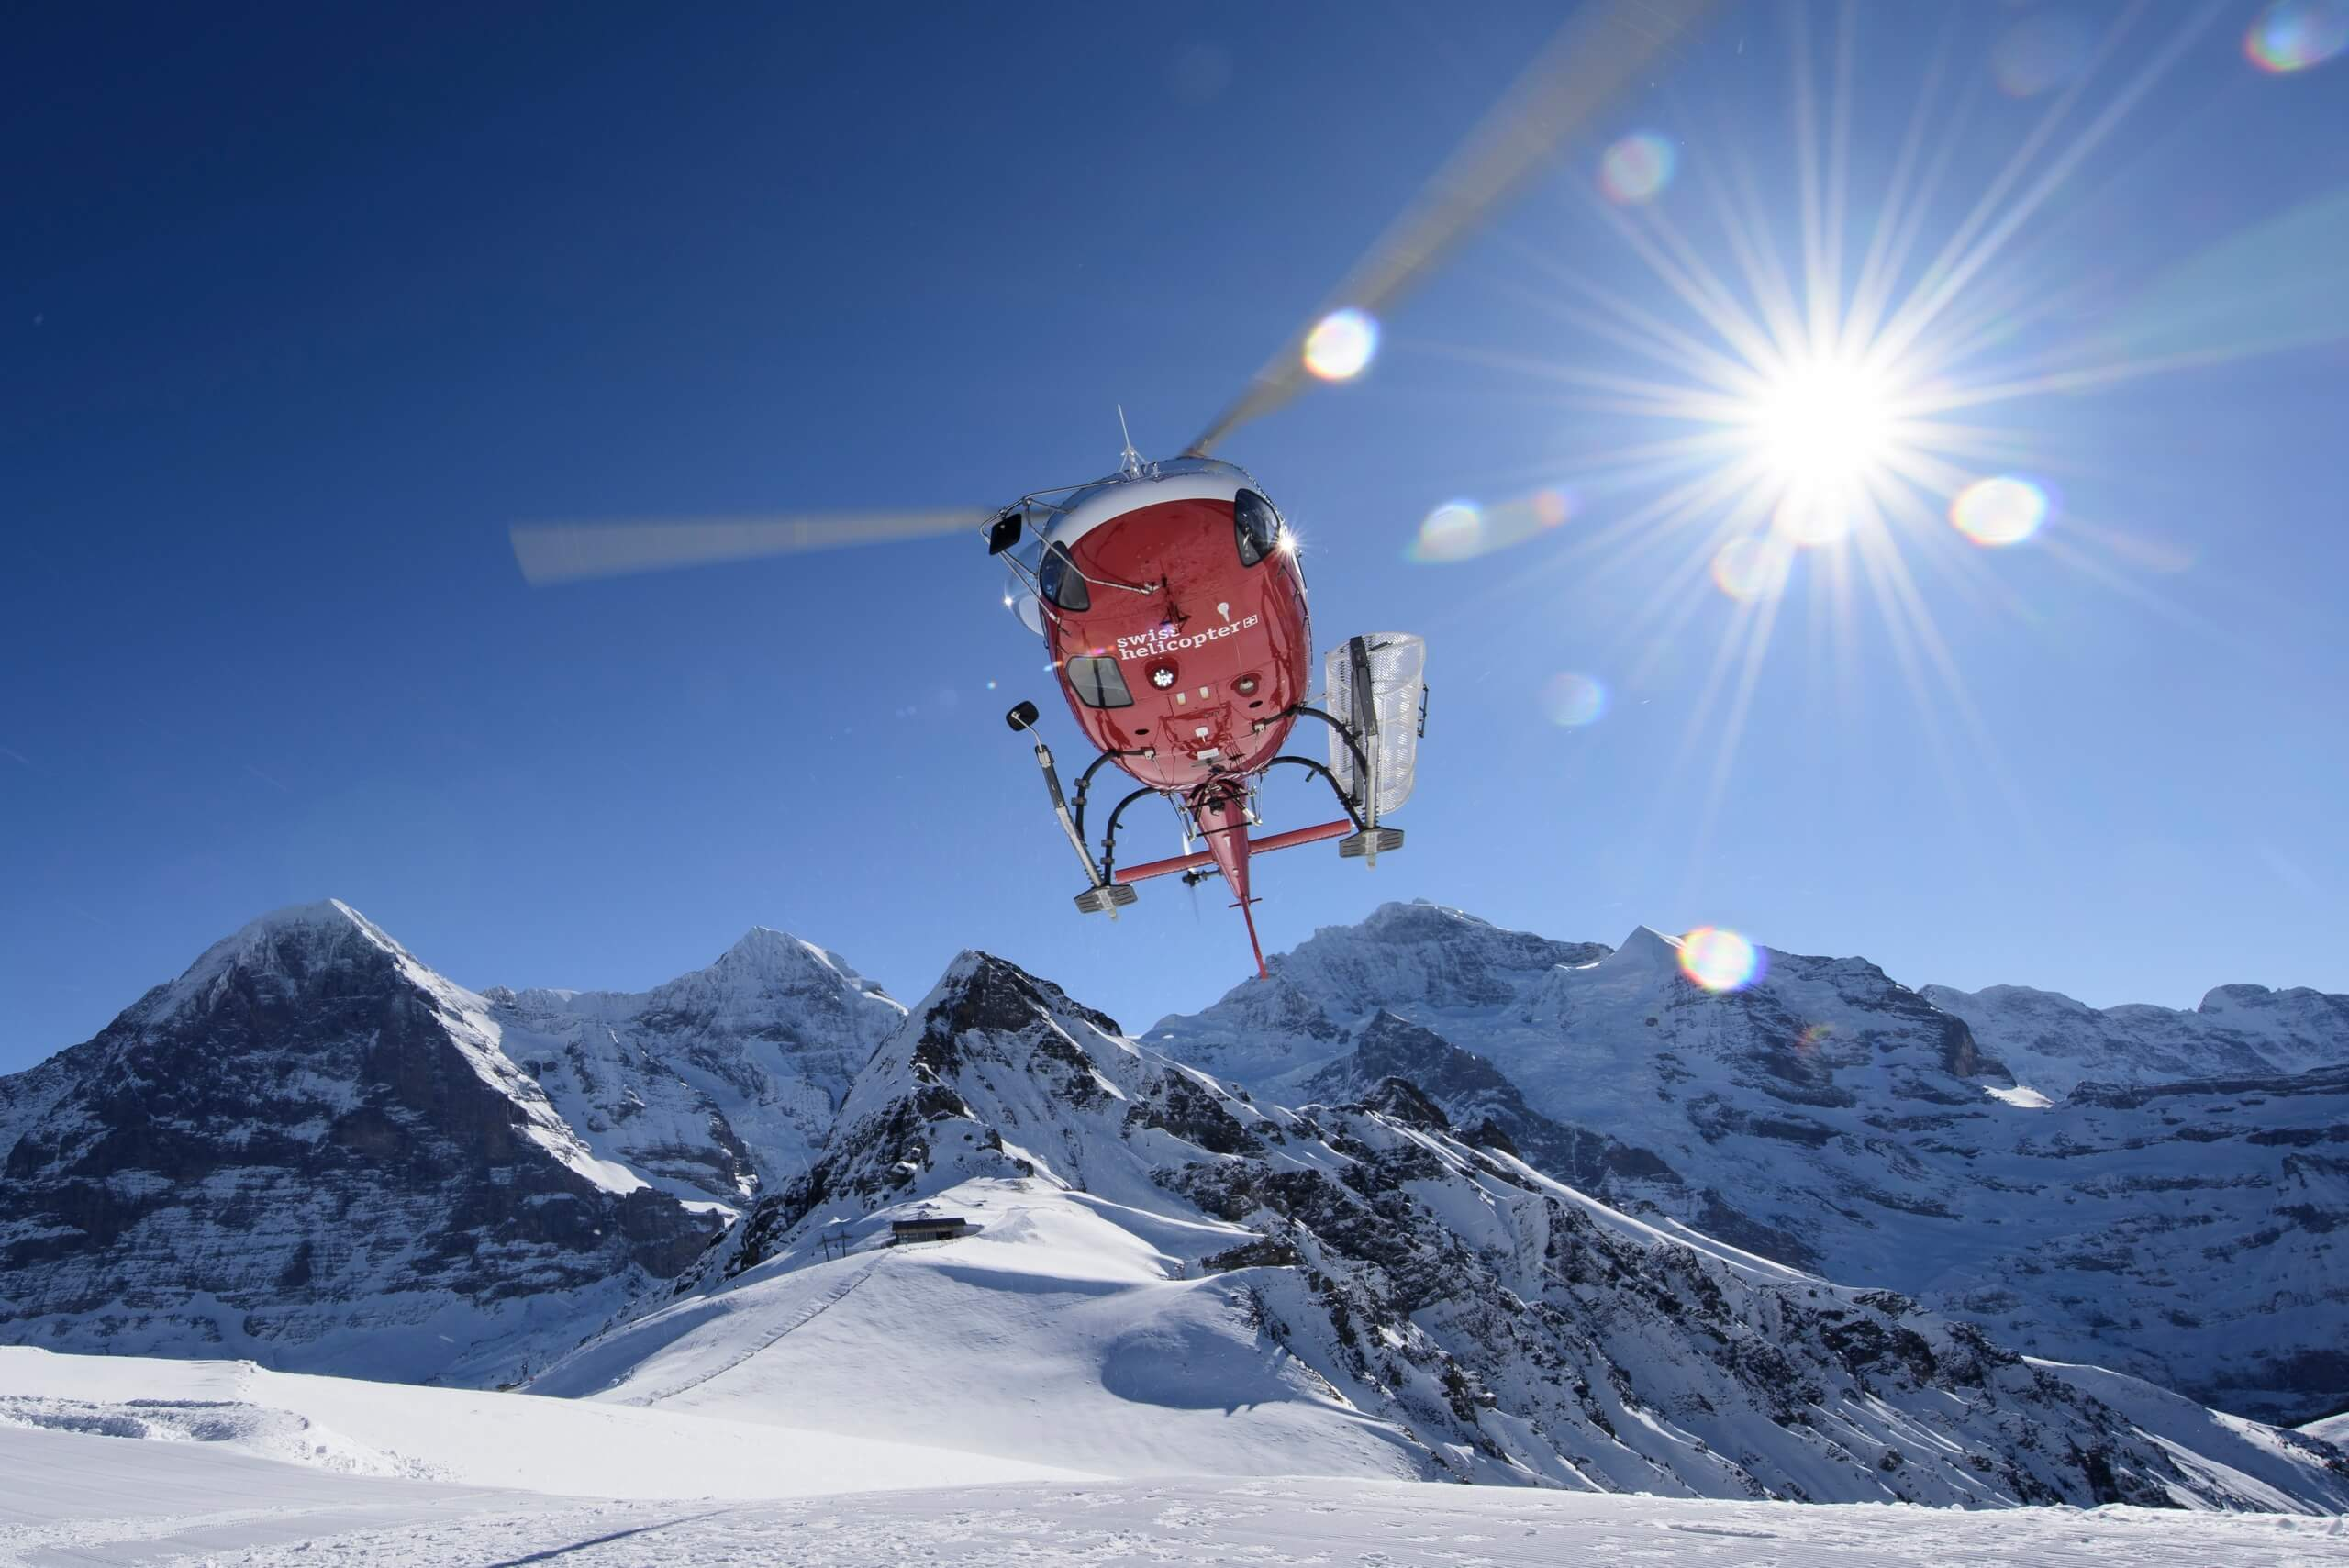 swiss-helicopter-berge-panorama